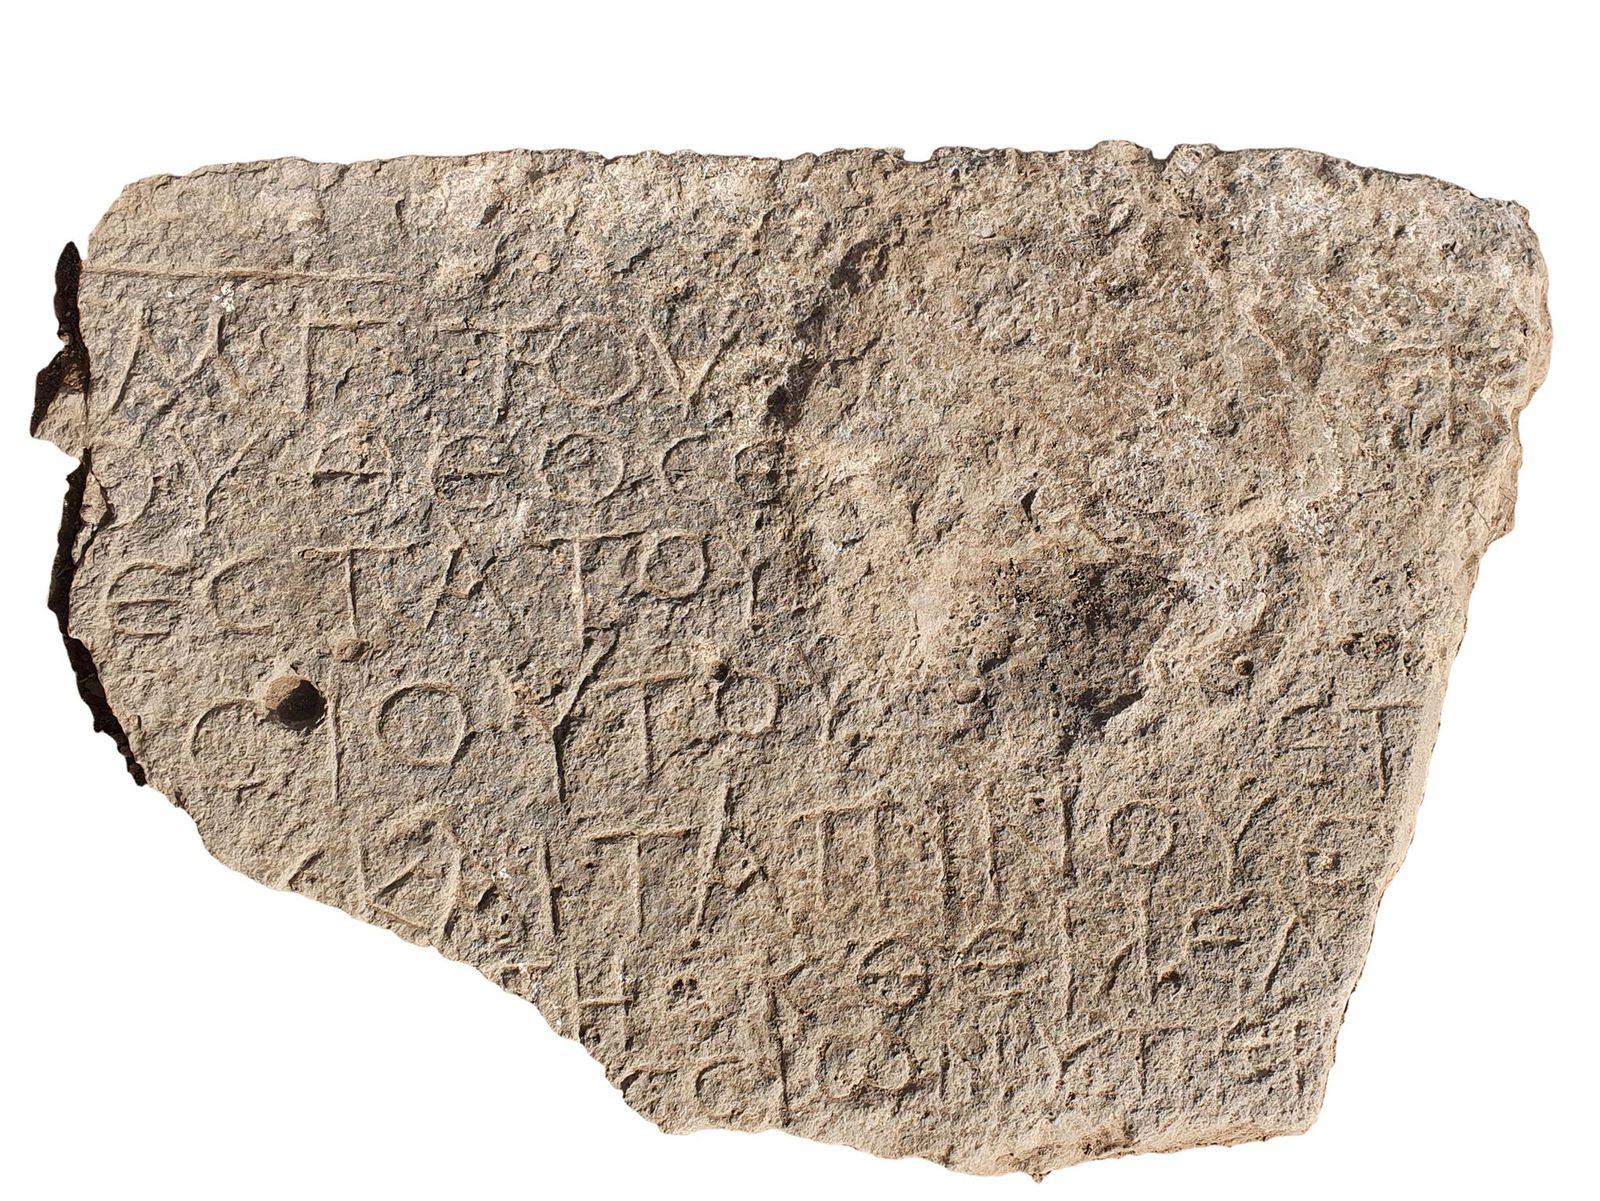 Inscription Offers Earliest Evidence of Christianity in Israel's Jezreel Valley